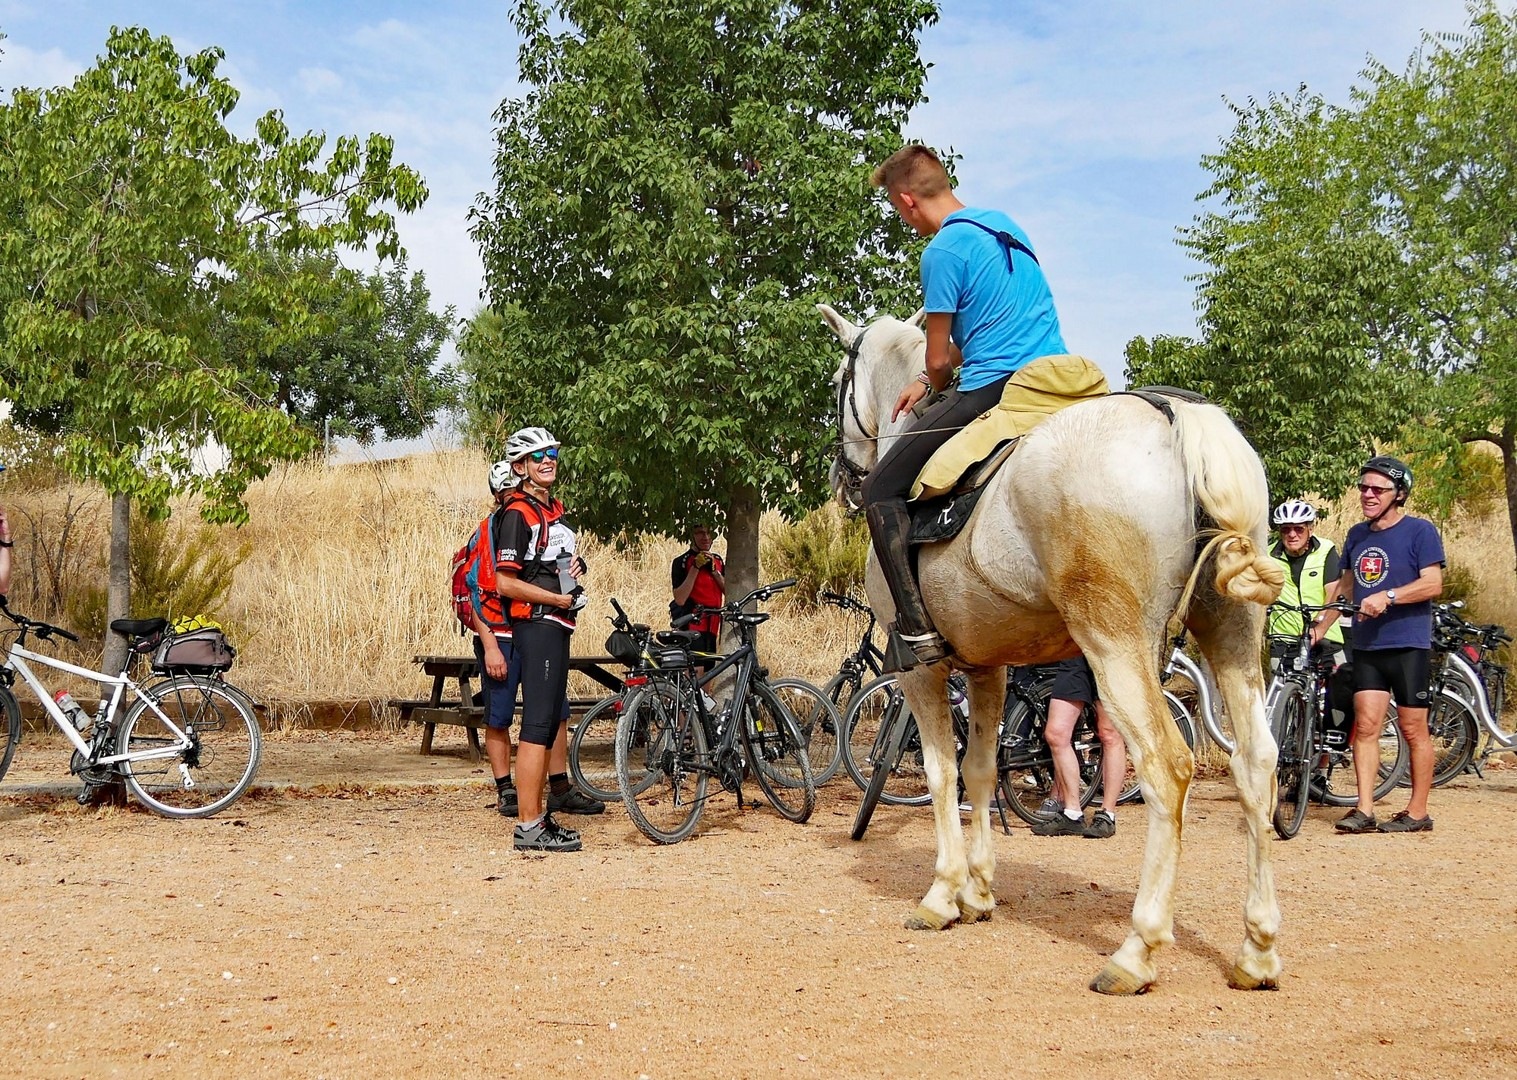 granada-to-seville-guided-leisure-cycling-holiday-in-spain.jpg - Spain - Granada to Seville - Leisure Cycling